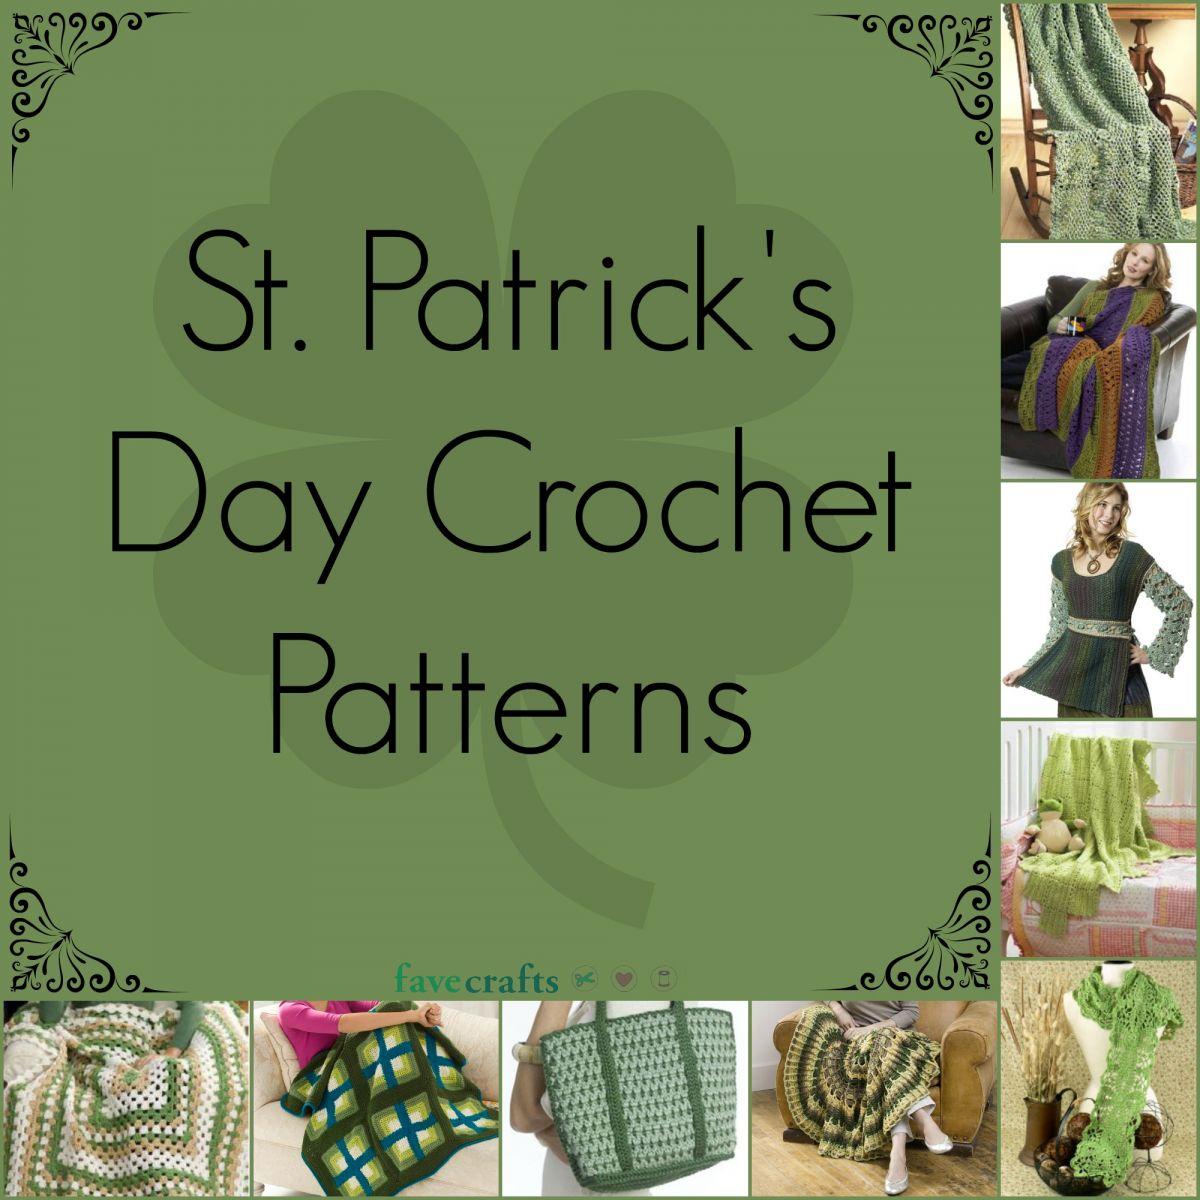 St. Patrick's Day Crochet Patterns